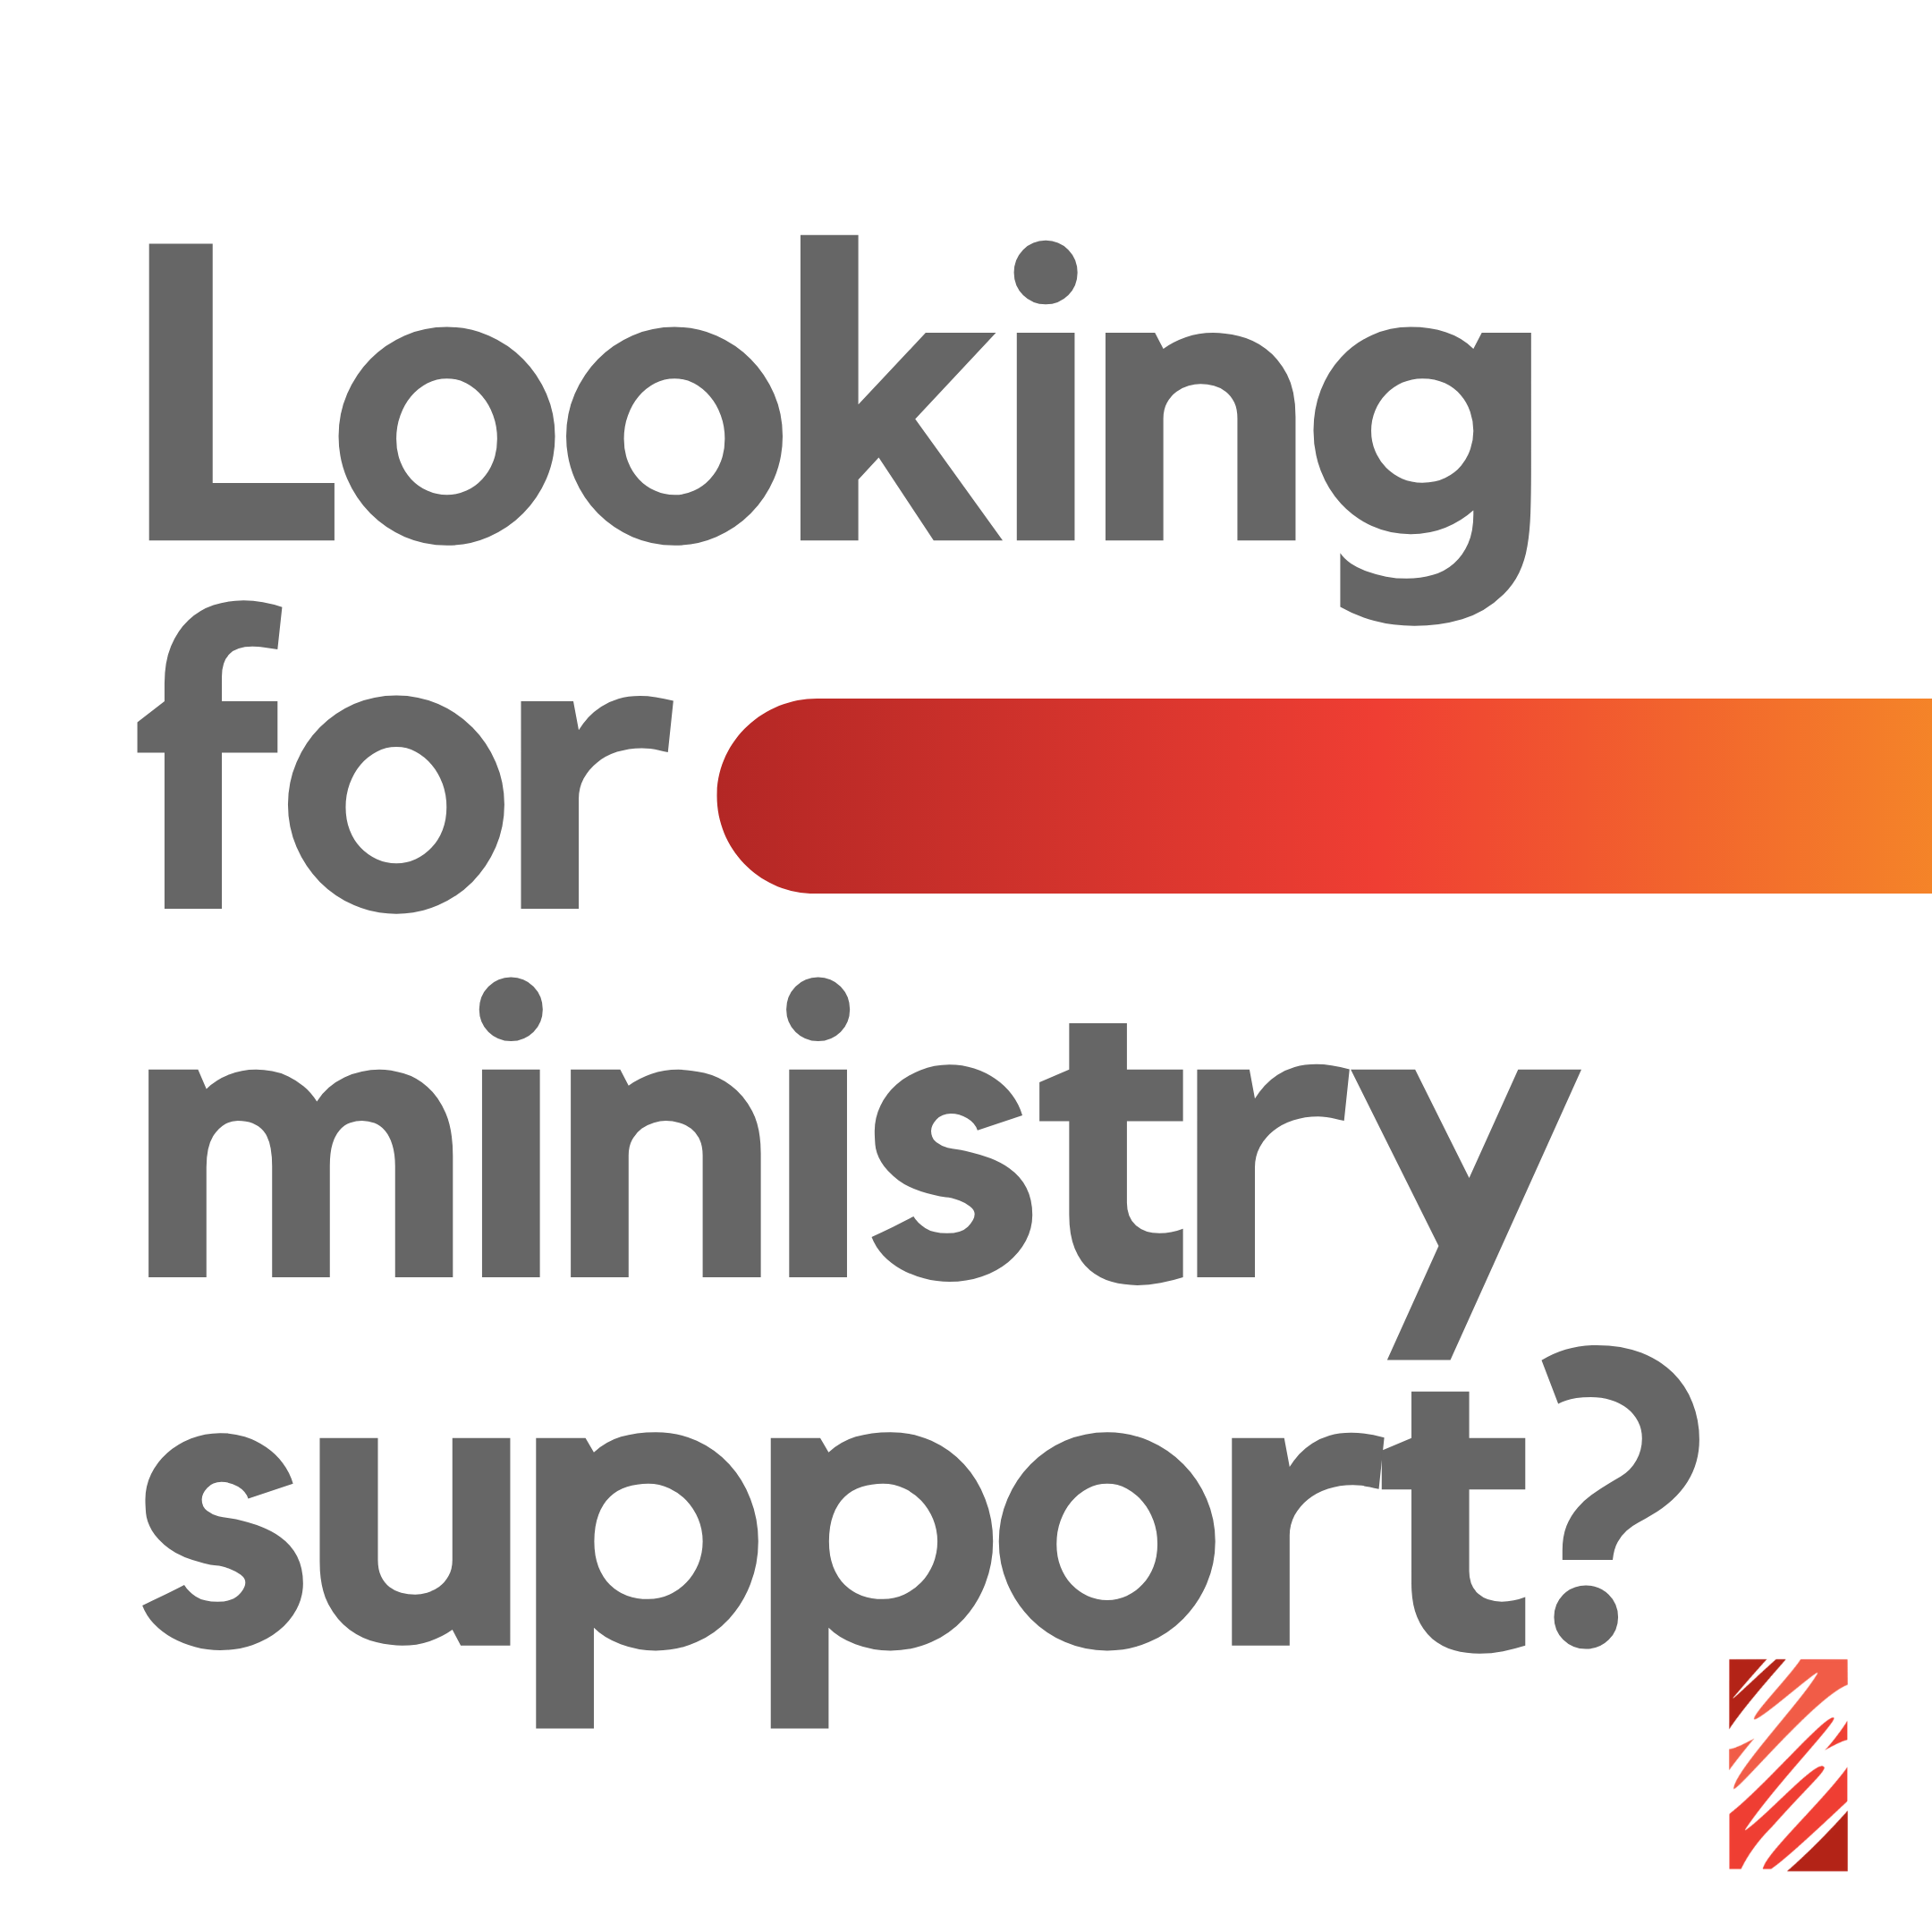 Youth Ministry Coaching Ad